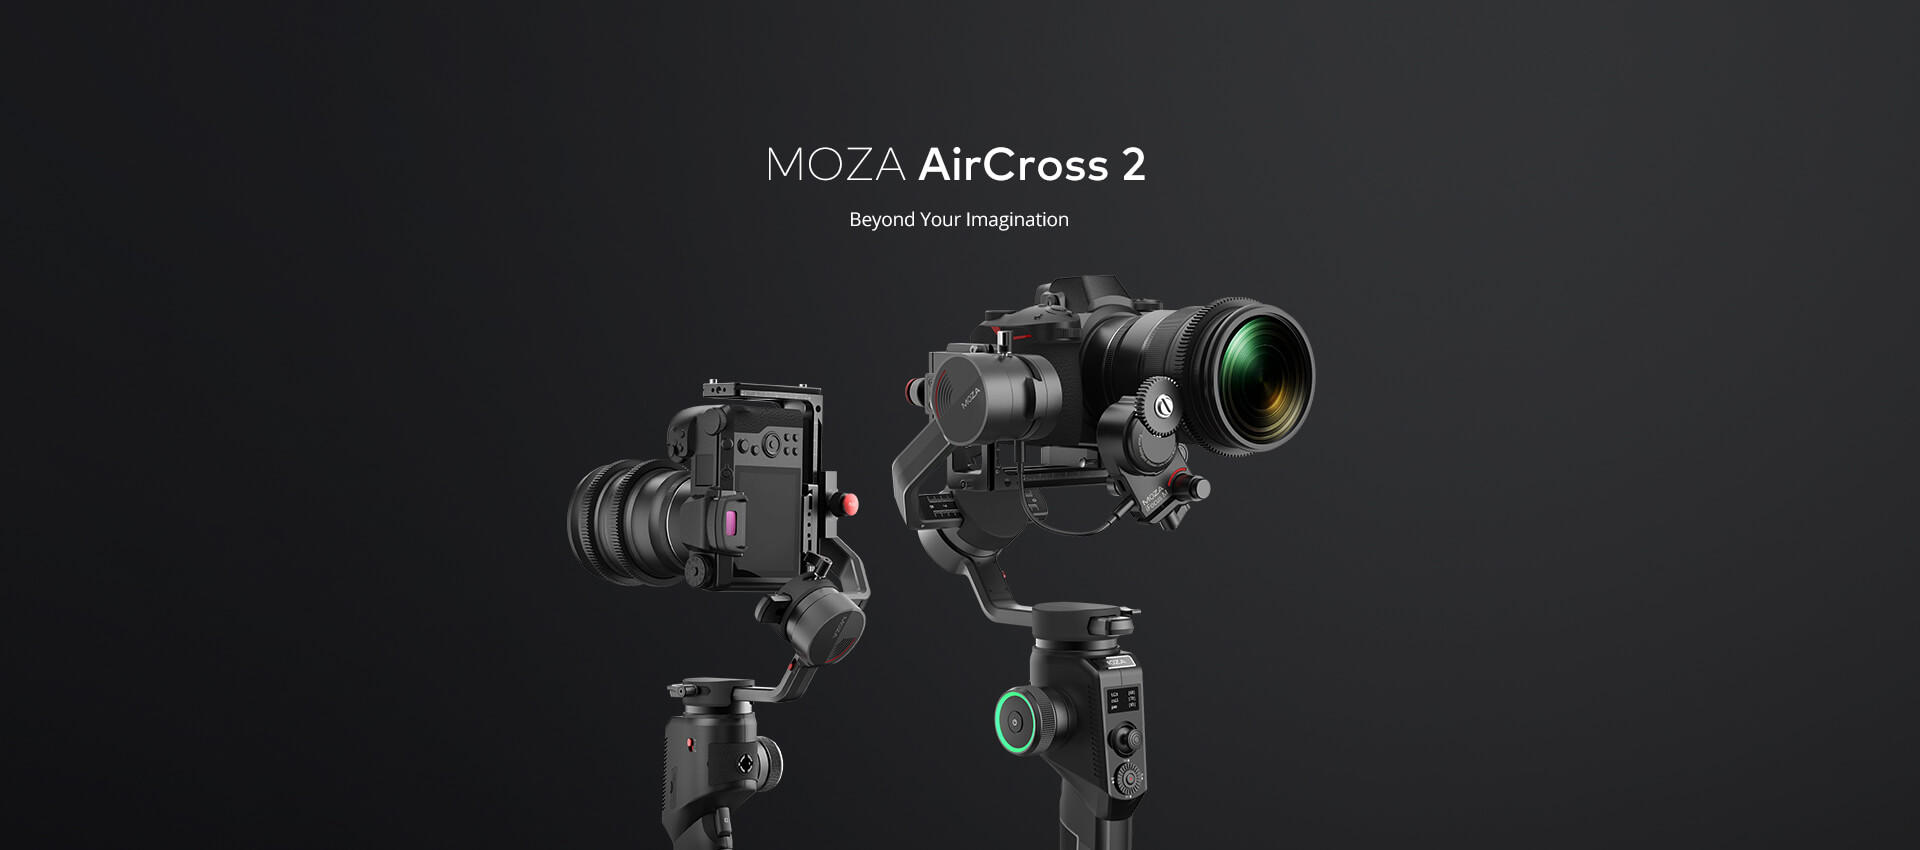 MOZA AirCross 2 Beyond Your Imagination